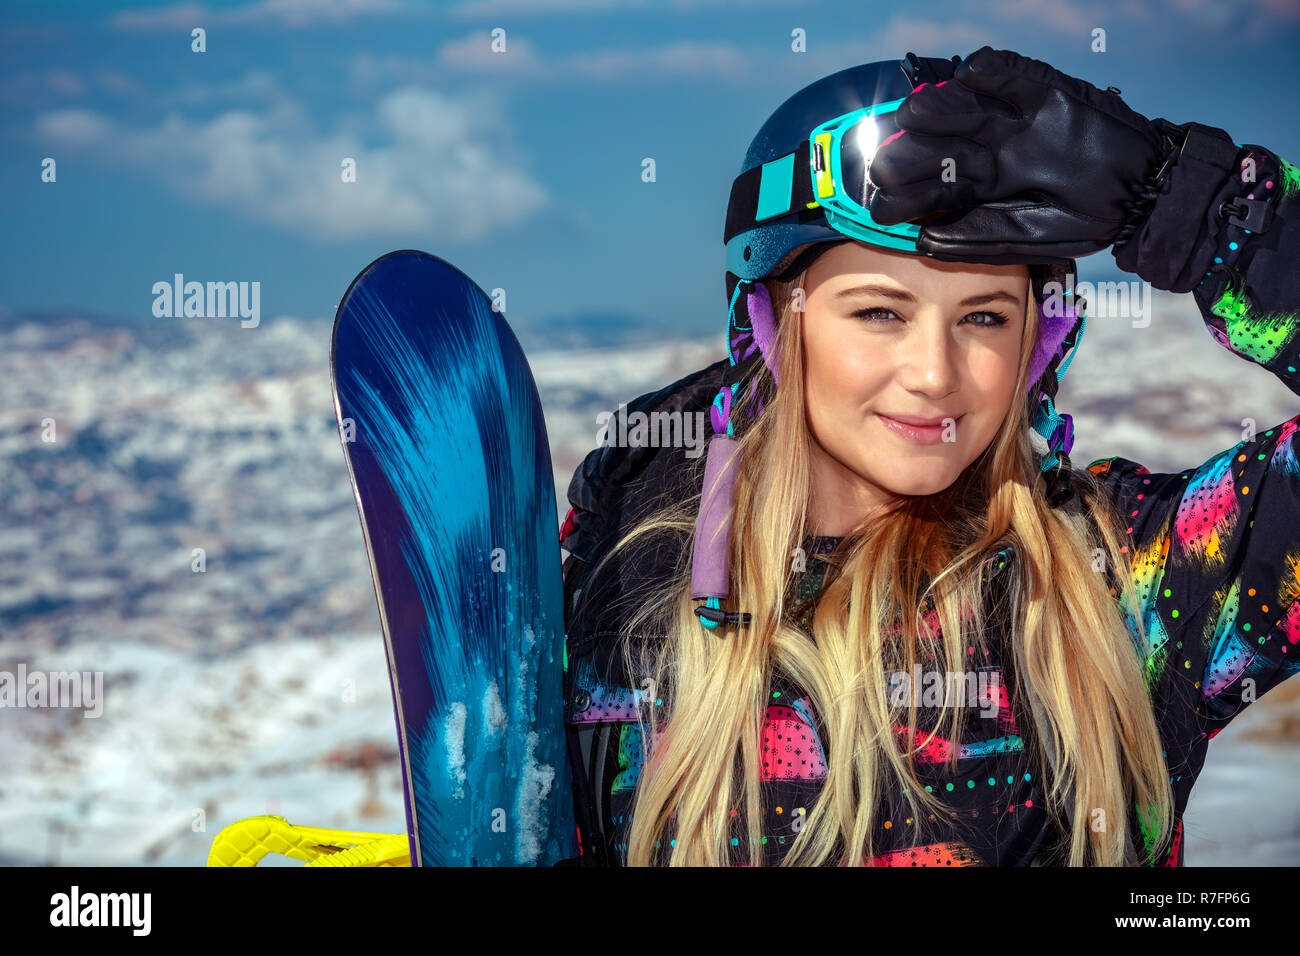 Portrait of a cute blond snowboard trainer in the snowy mountains, extreme winter sport, competition between snowboarders, active wintertime holidays - Stock Image